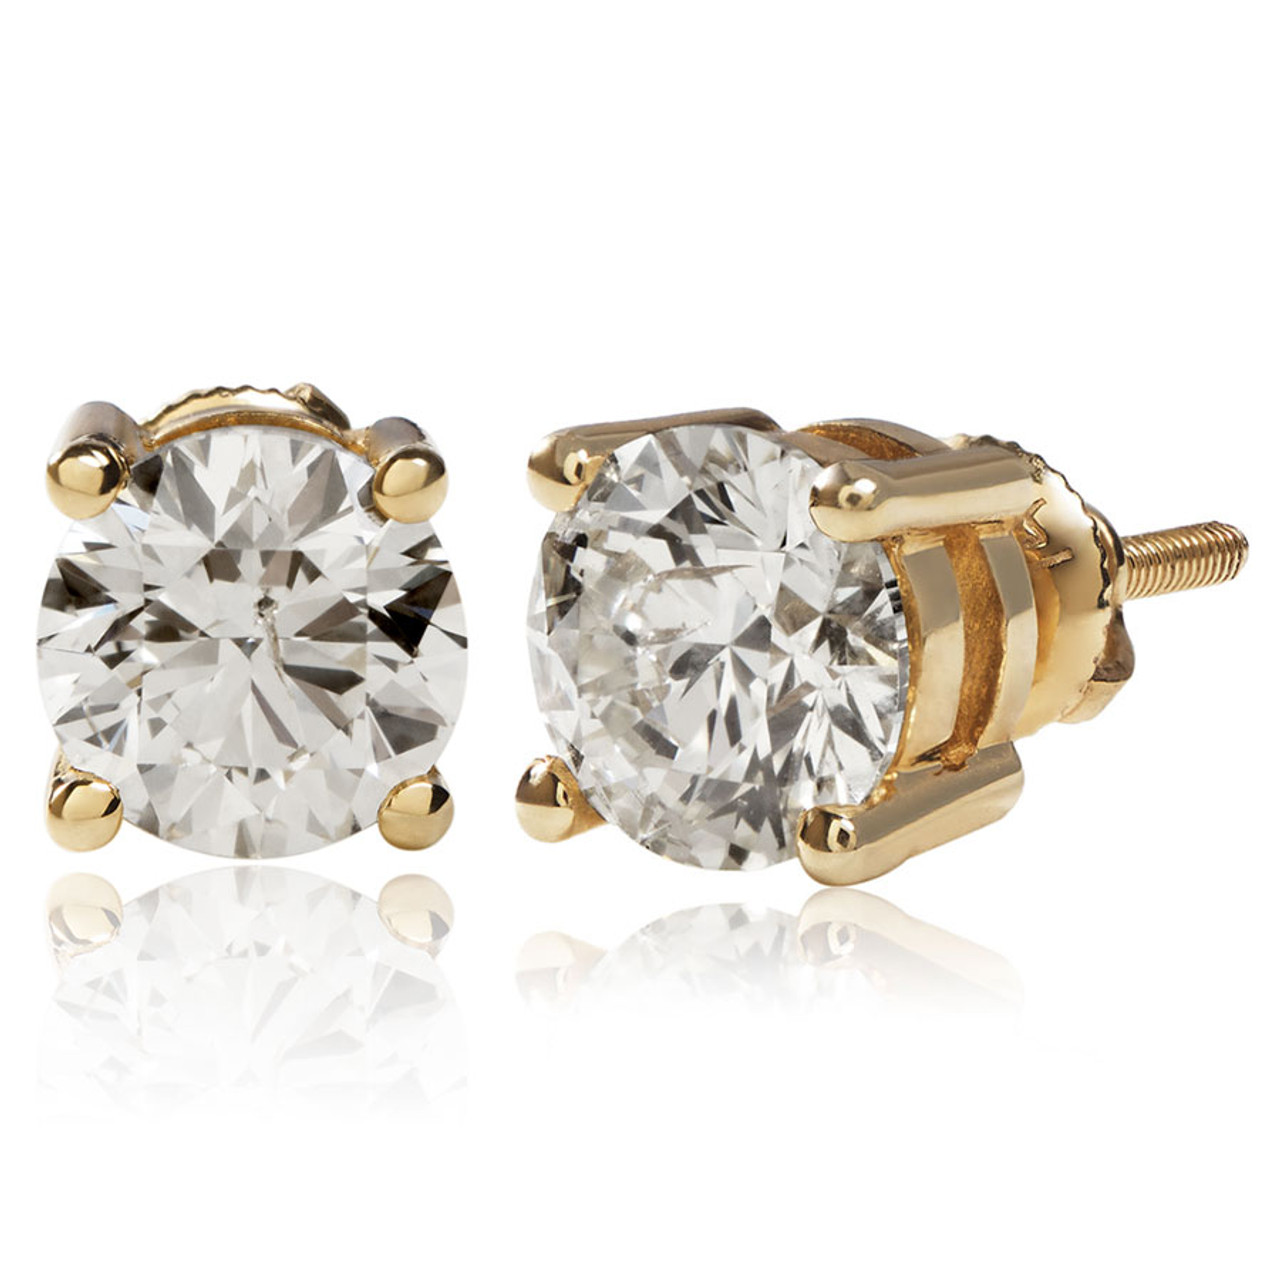 8a66651e004fc 14k Yellow Gold 2.00ct Diamond Solitaire Stud Earrings